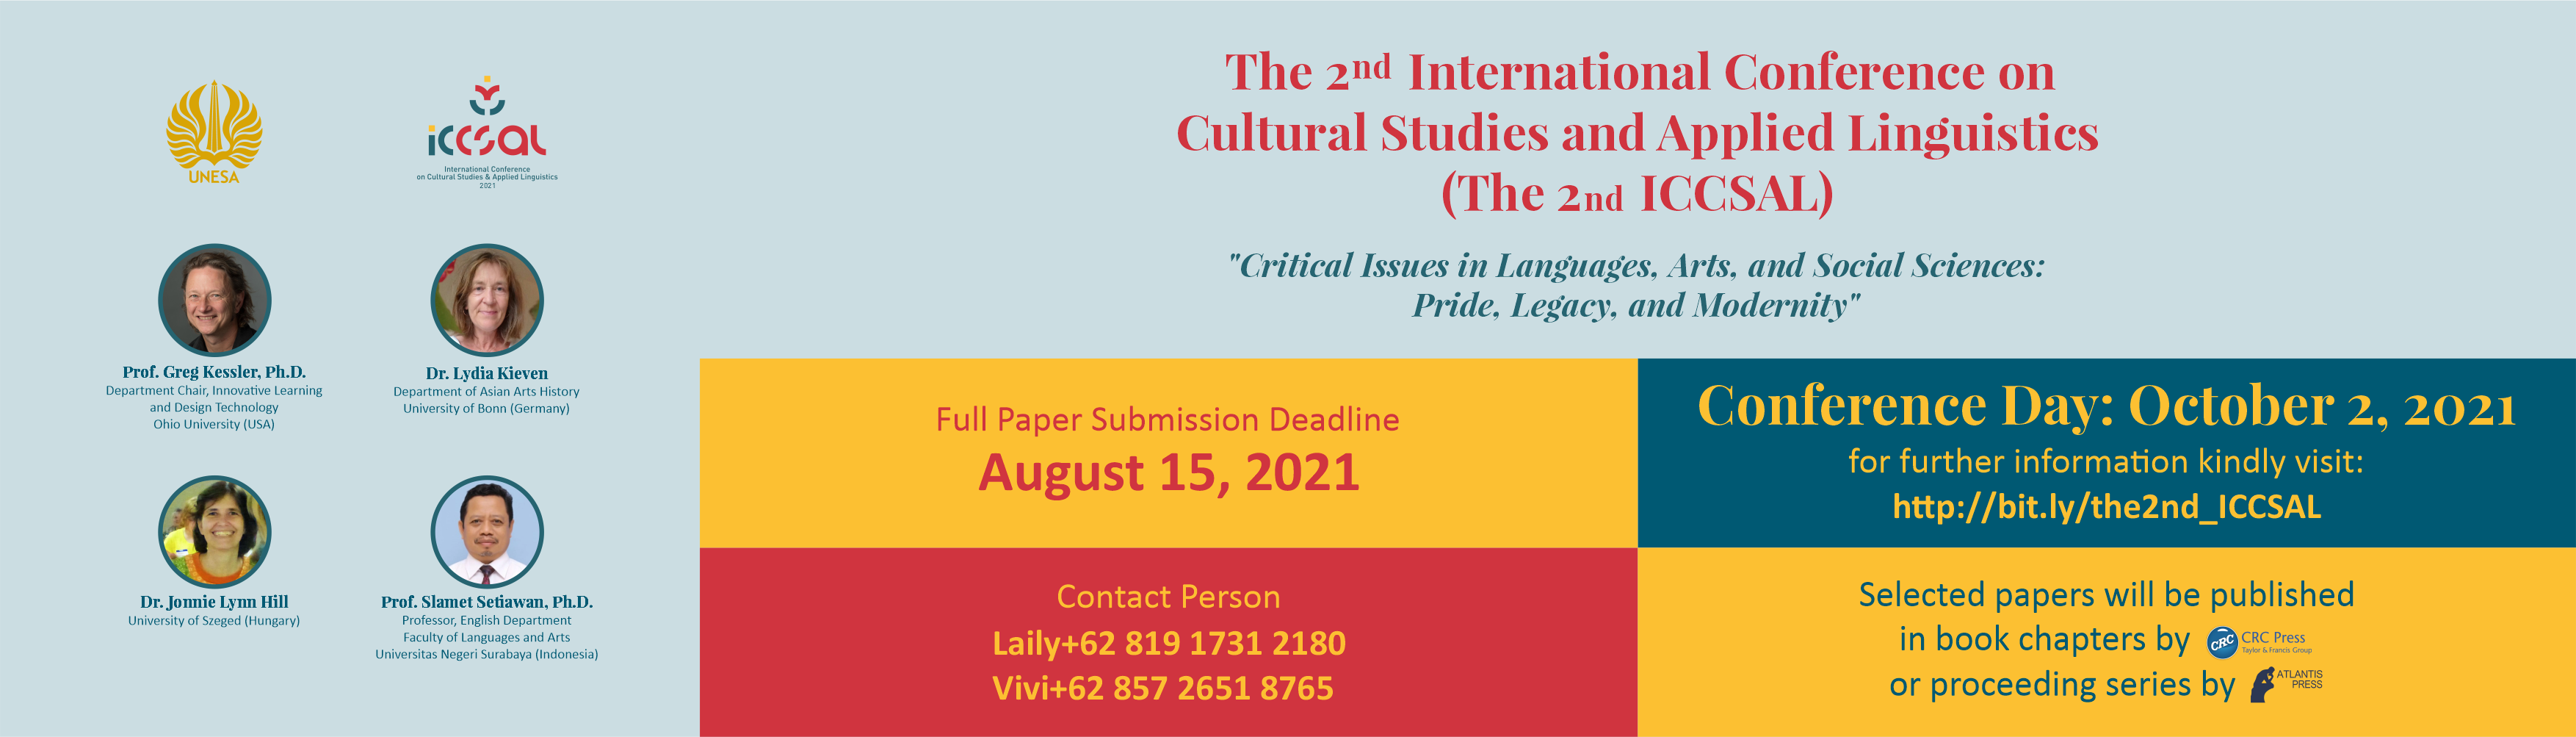 THE 2ND INTERNATIONAL CONFERENCE ON CULTURAL STUDIES AND APPLIED LINGUISTICS (ICCSAL)